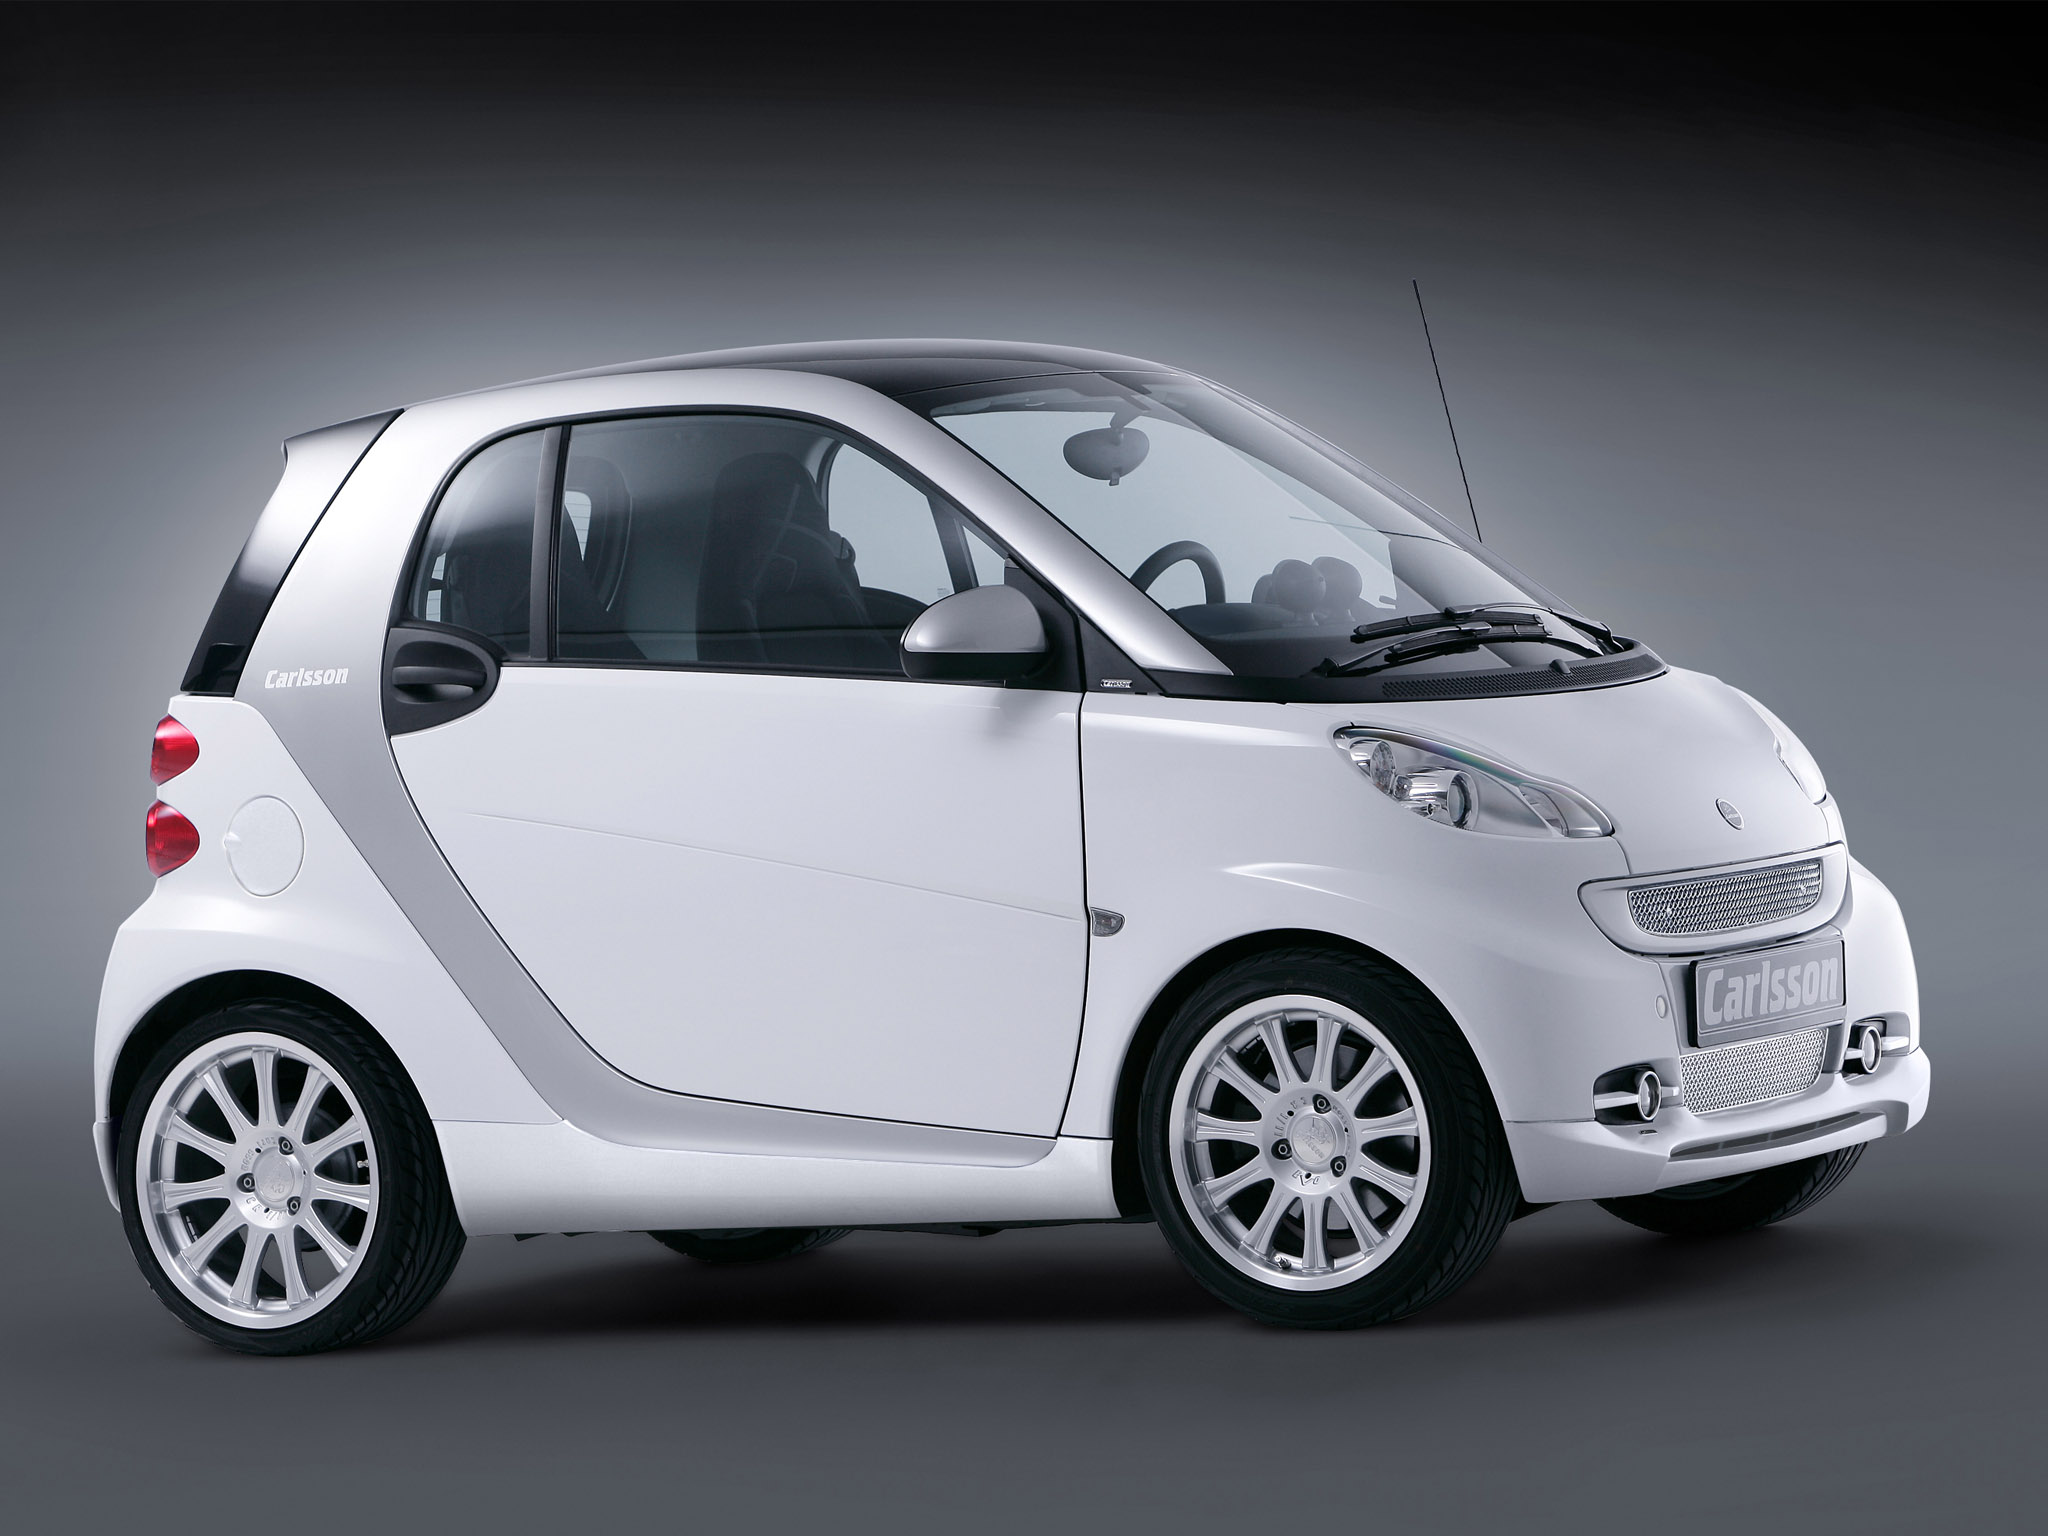 carlsson smart fortwo 2007 carlsson smart fortwo 2007 photo 04 car in pictures car photo gallery. Black Bedroom Furniture Sets. Home Design Ideas